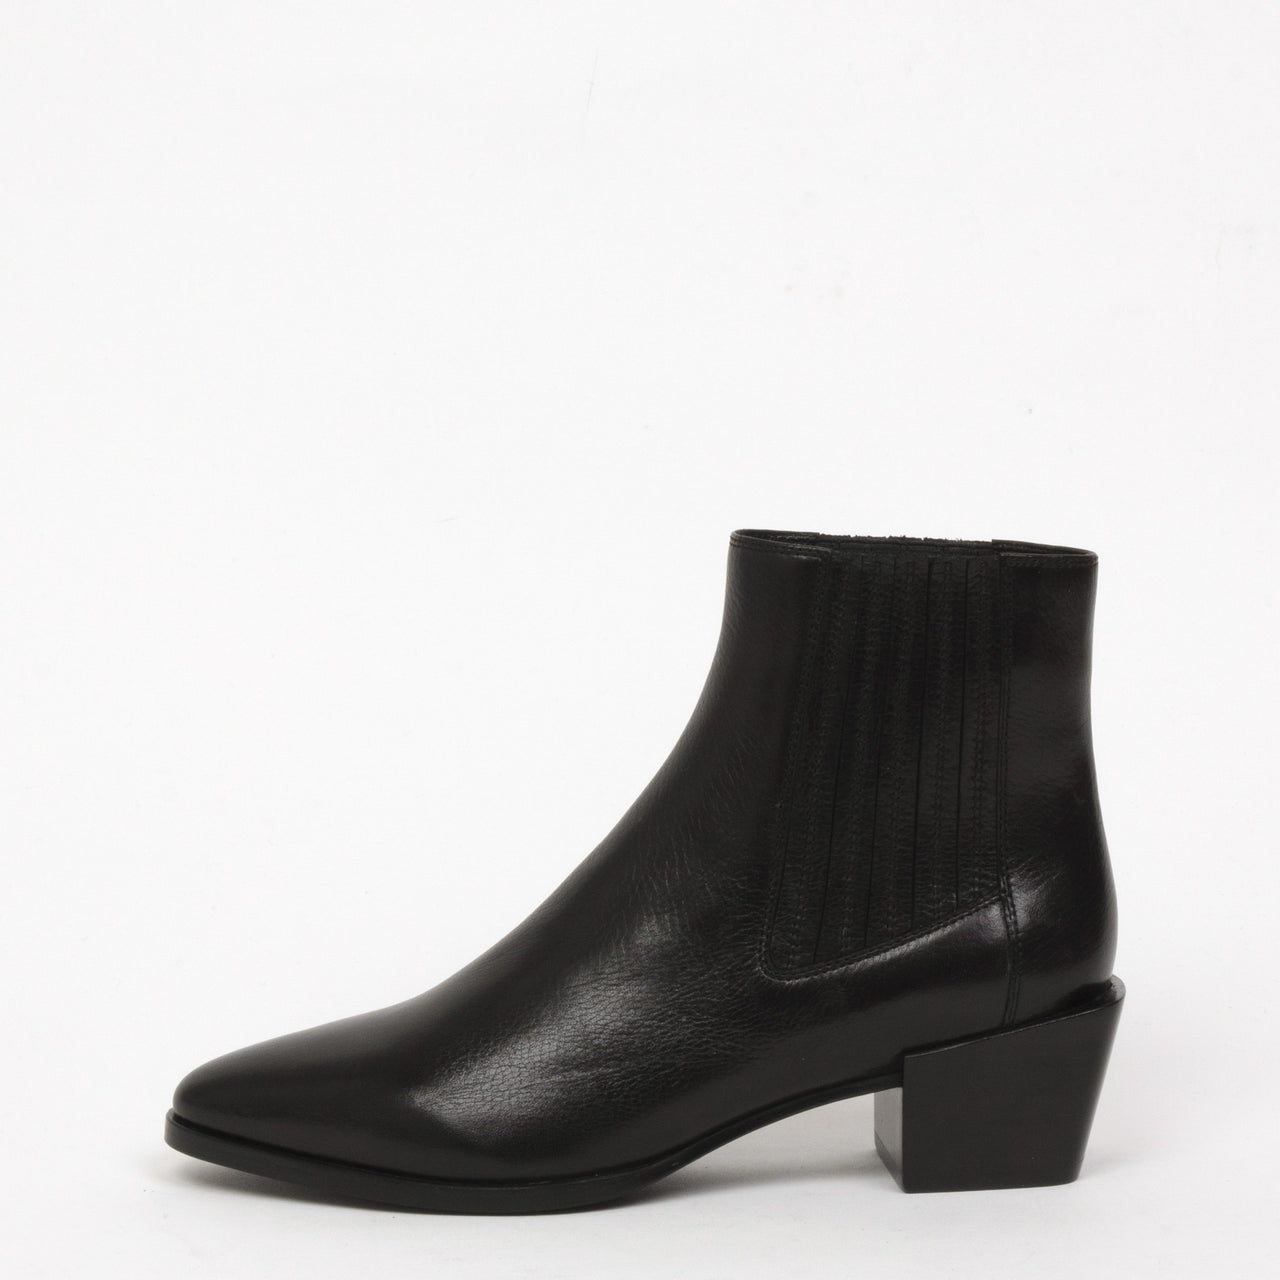 Rag & Bone Rover Boot - Leather Chelsea Ankle Bootie - Black